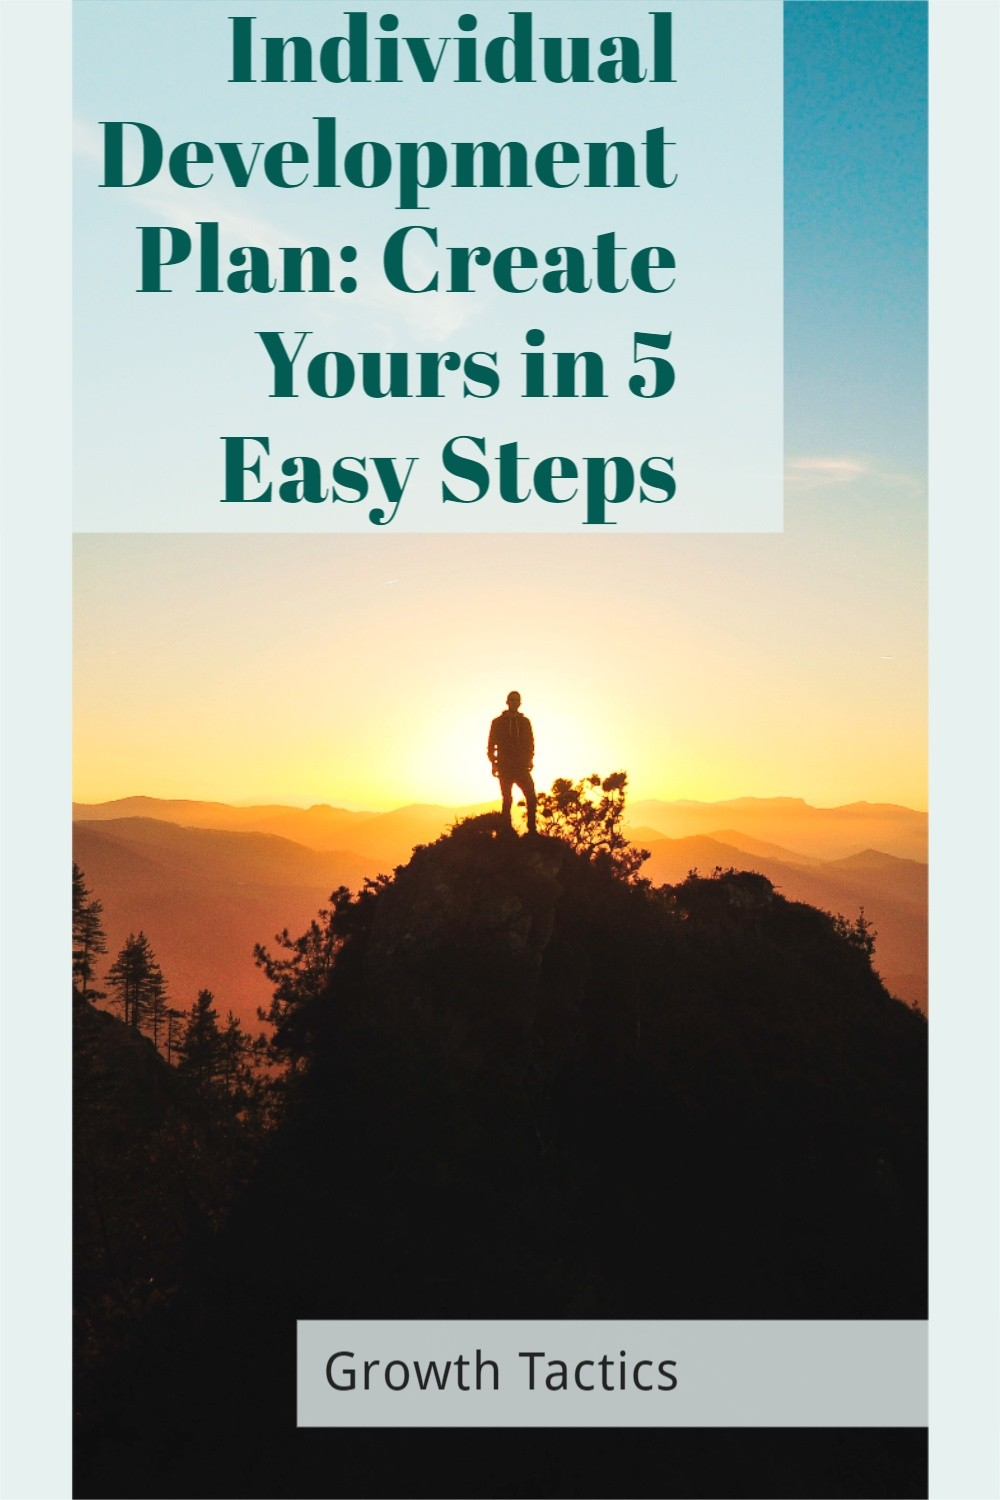 Individual Development Plan: Create Yours in 5 Easy Steps